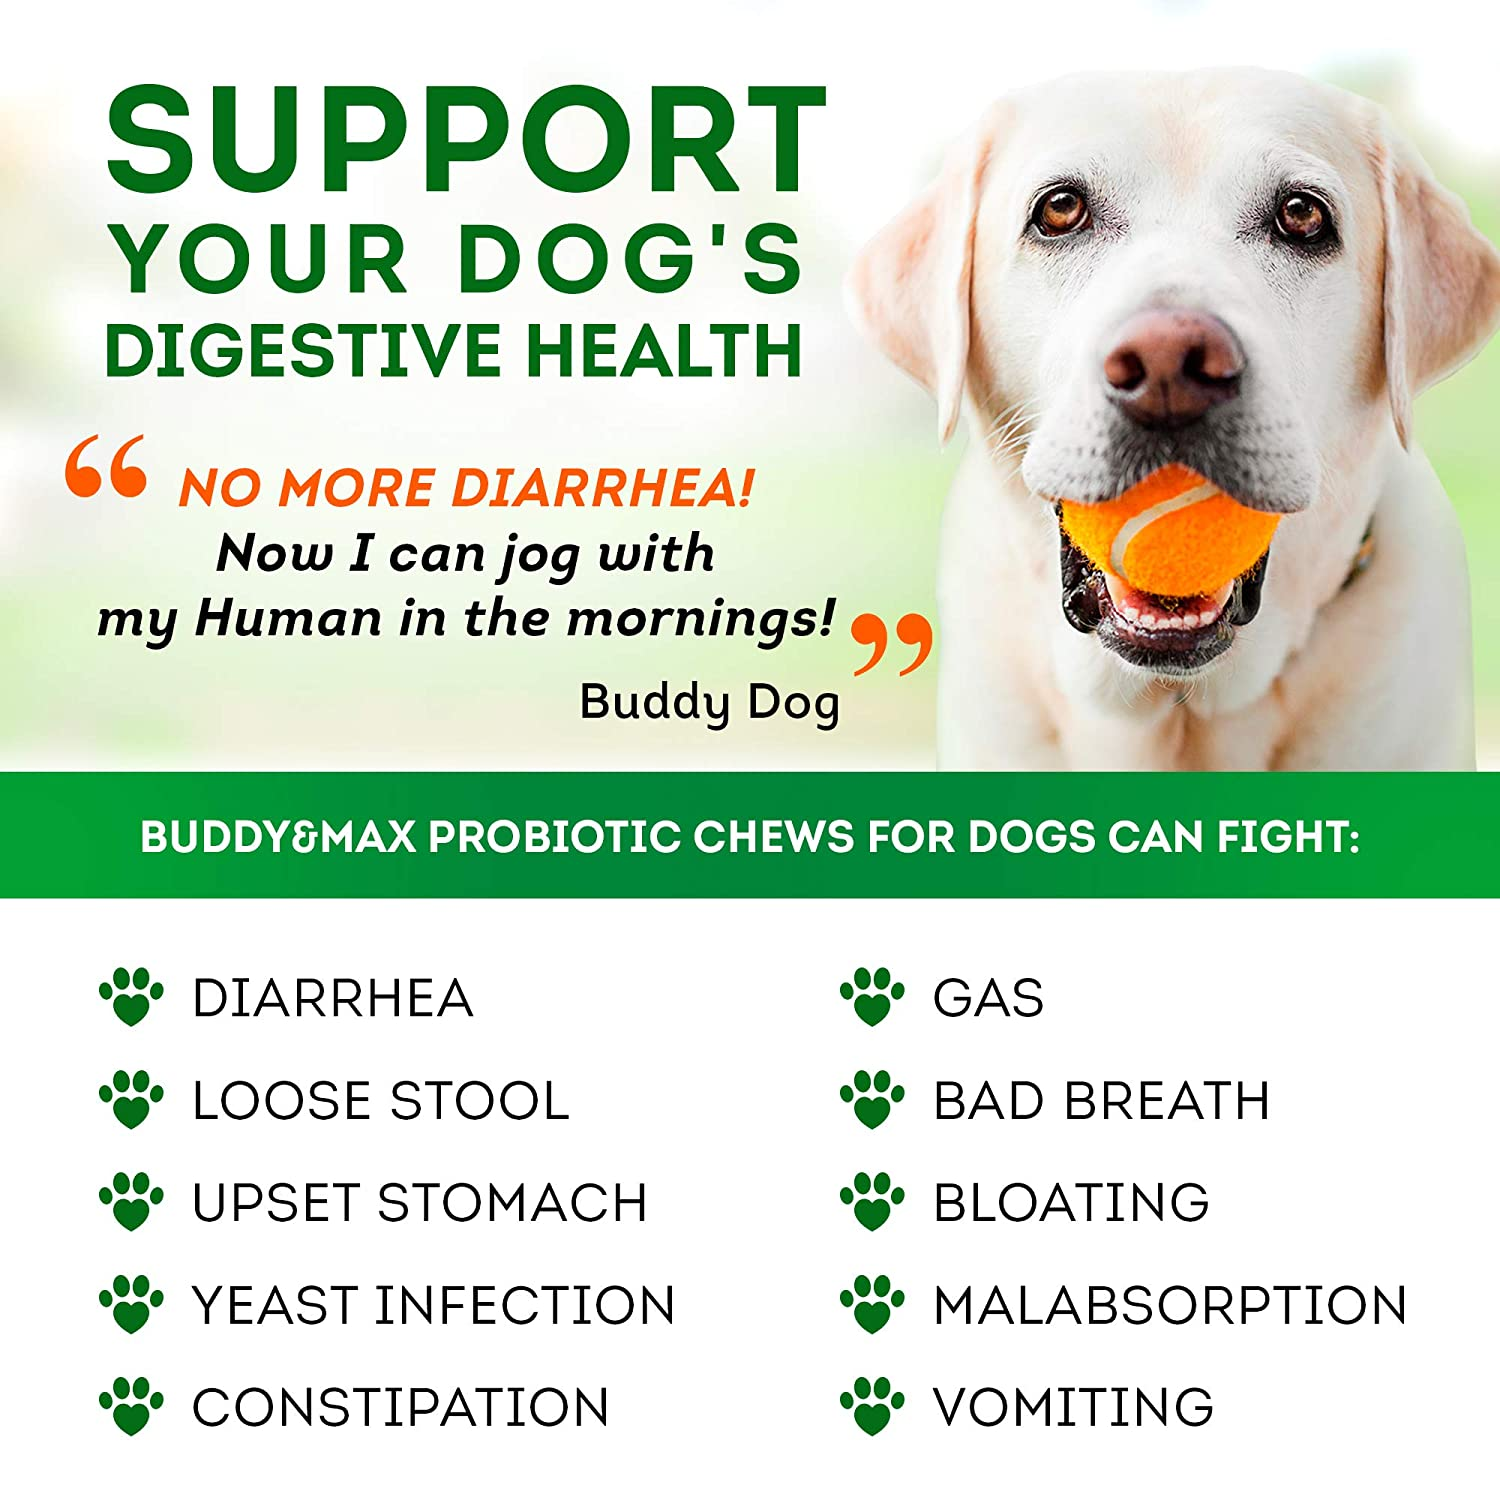 Probiotics for Dogs - Chewable Dog Digestive Enzymes - Dog Diarrhea,  Stomach, Vomit, Gas, Allergy Relief, Weight Support - Contains Prebiotics -  Dog